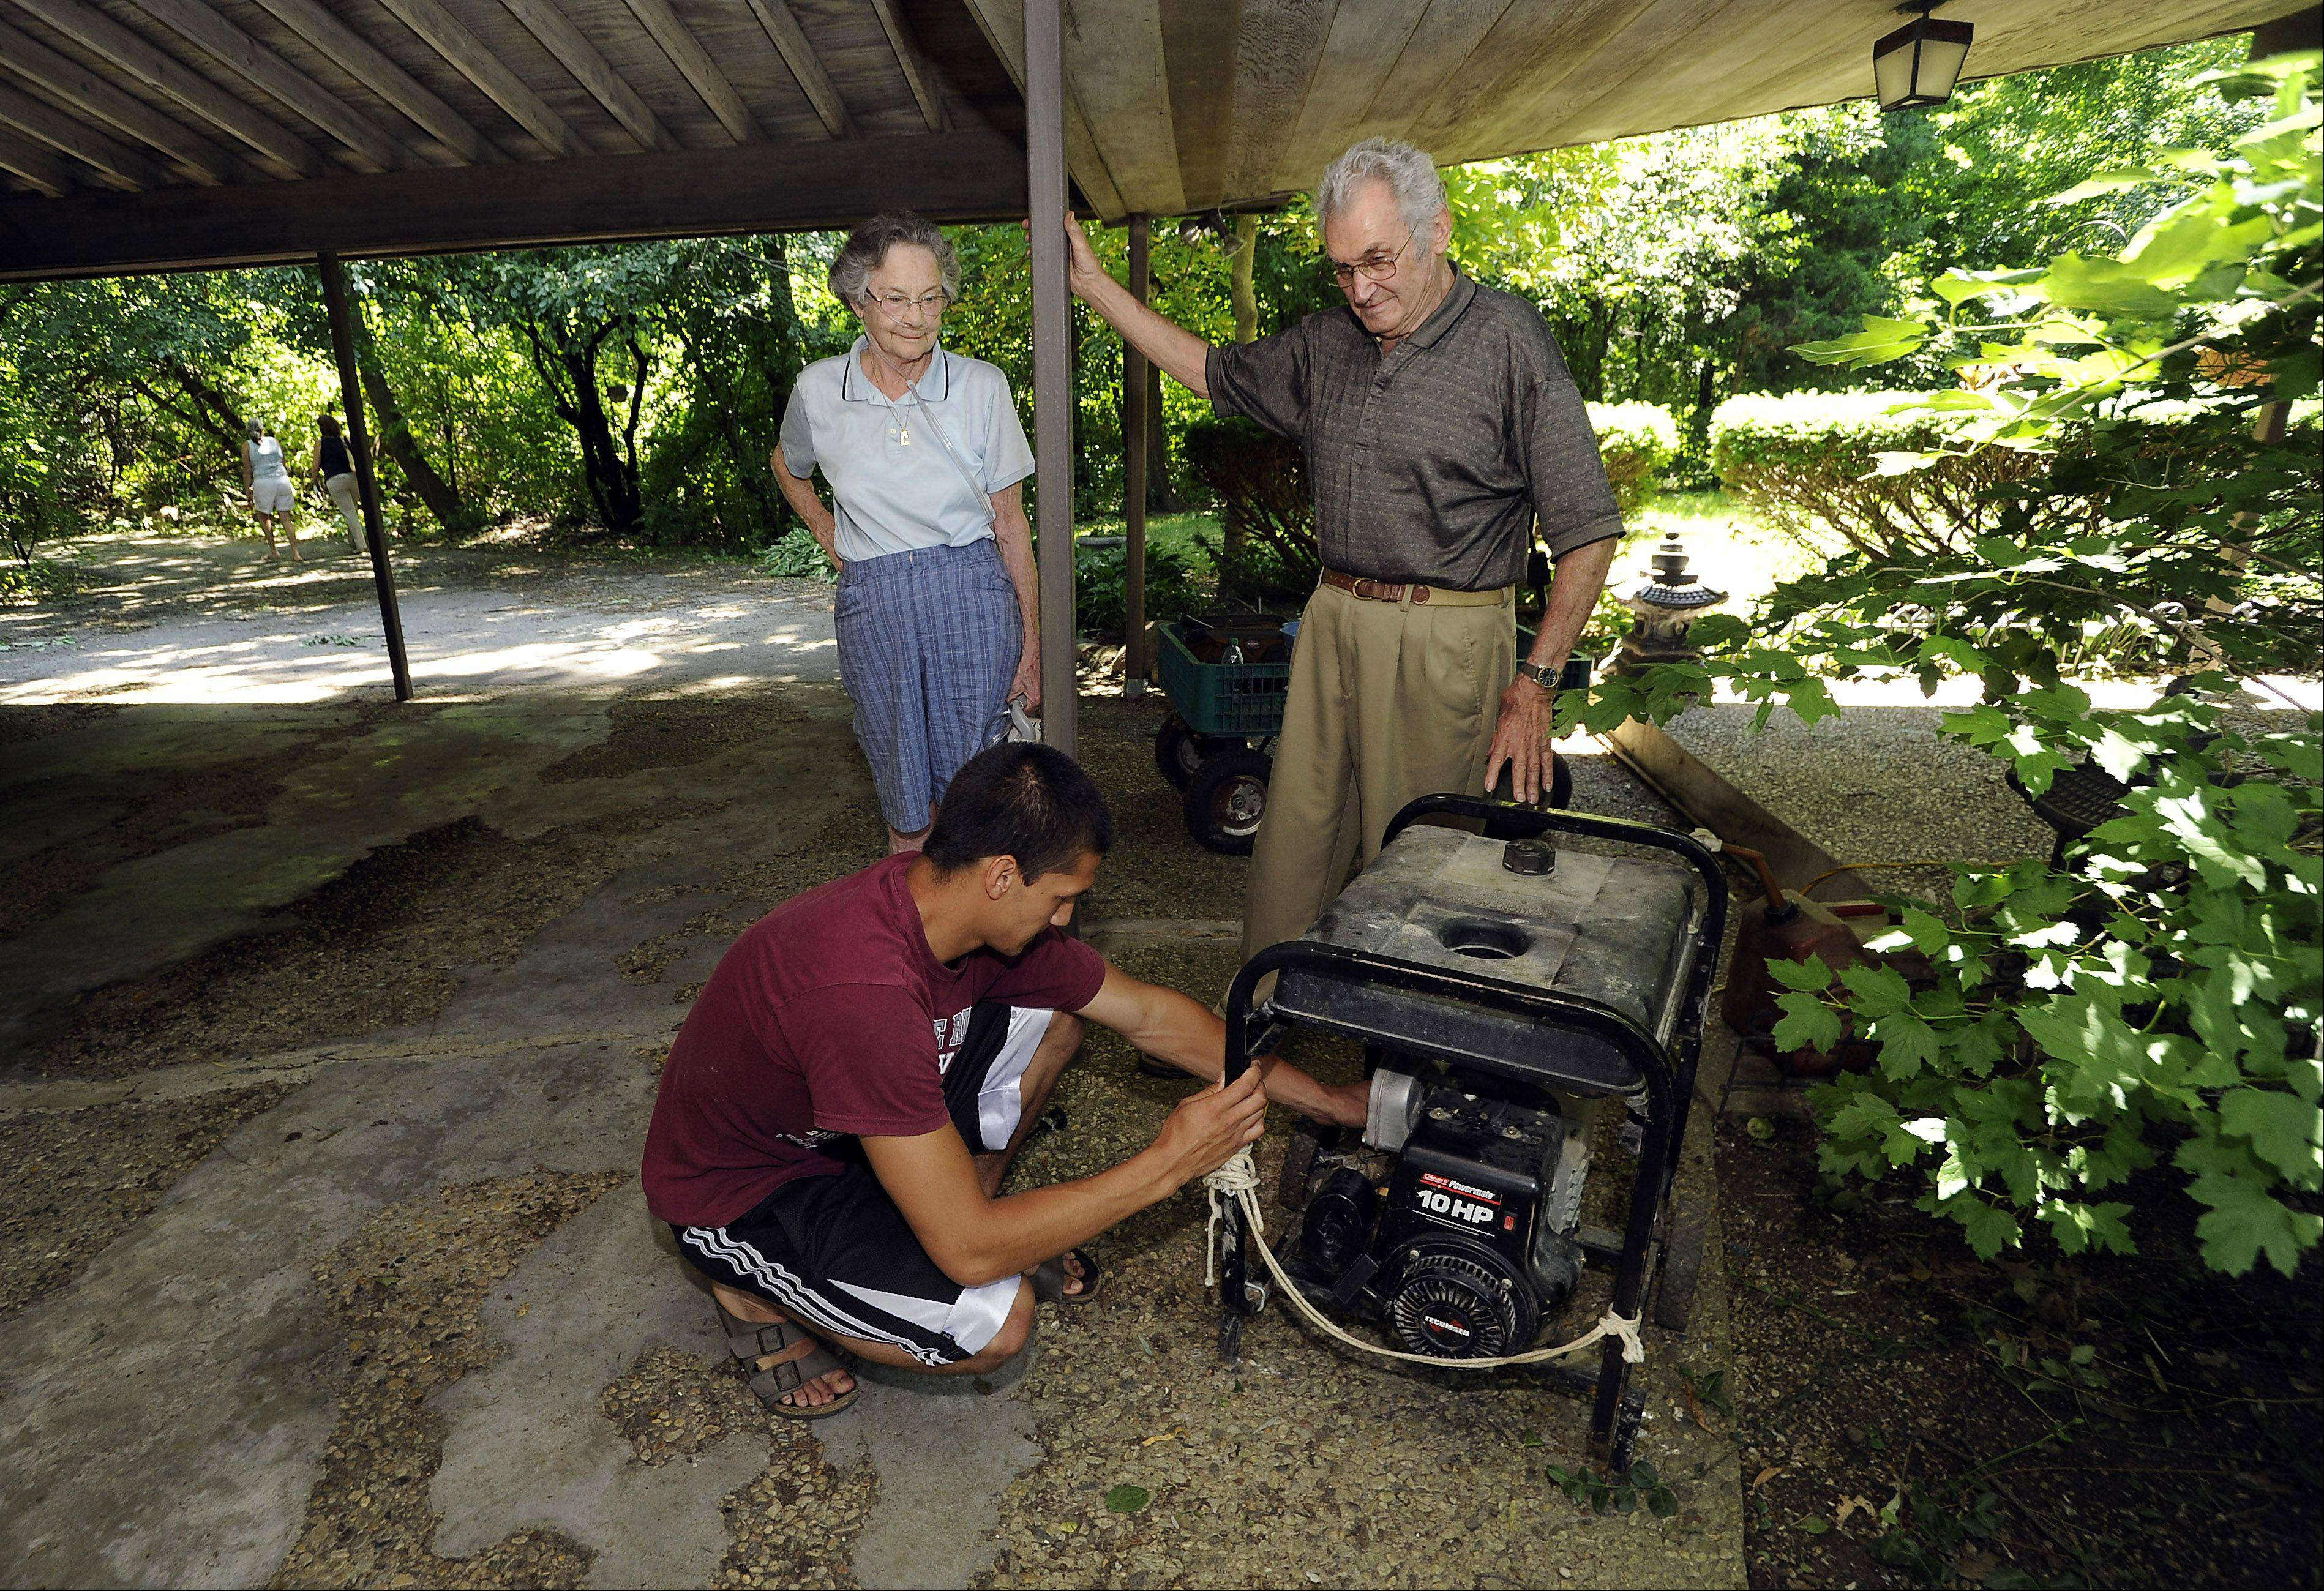 Lucas Zamudio, 20, of Barrington, fires up a generator Tuesday for his grandparents, Rosemary and Richard Libby of Barrington, who've been without power since Monday.